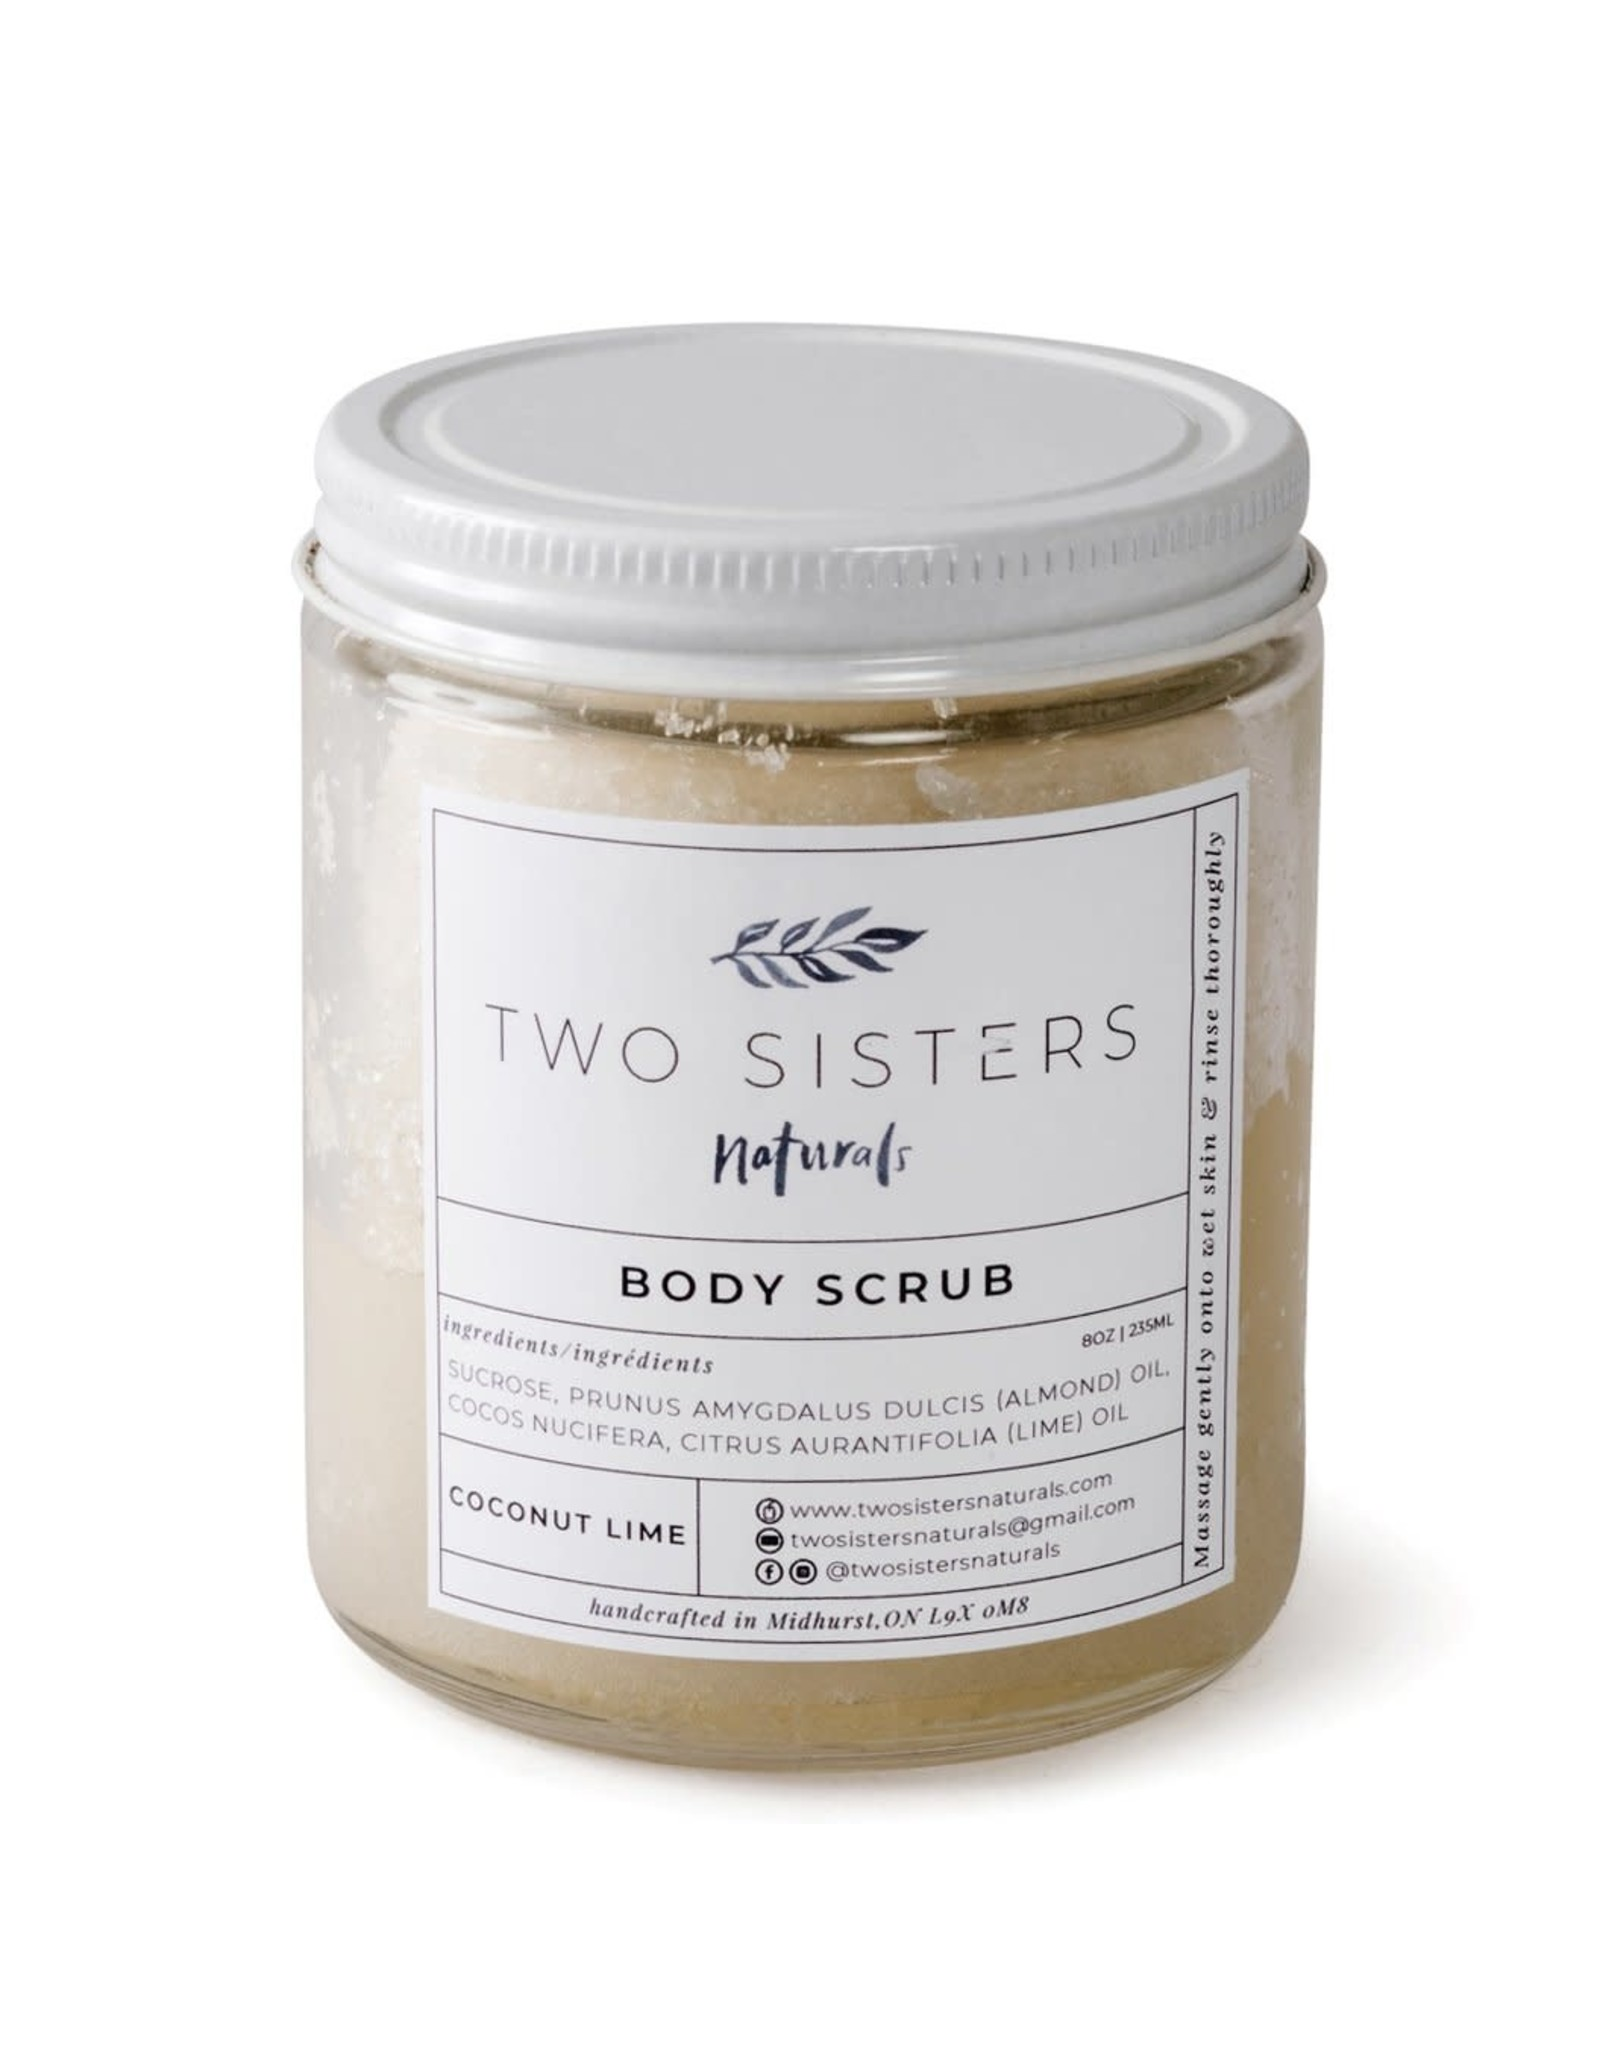 Two Sisters Naturals Body Scrub by Two Sisters Naturals